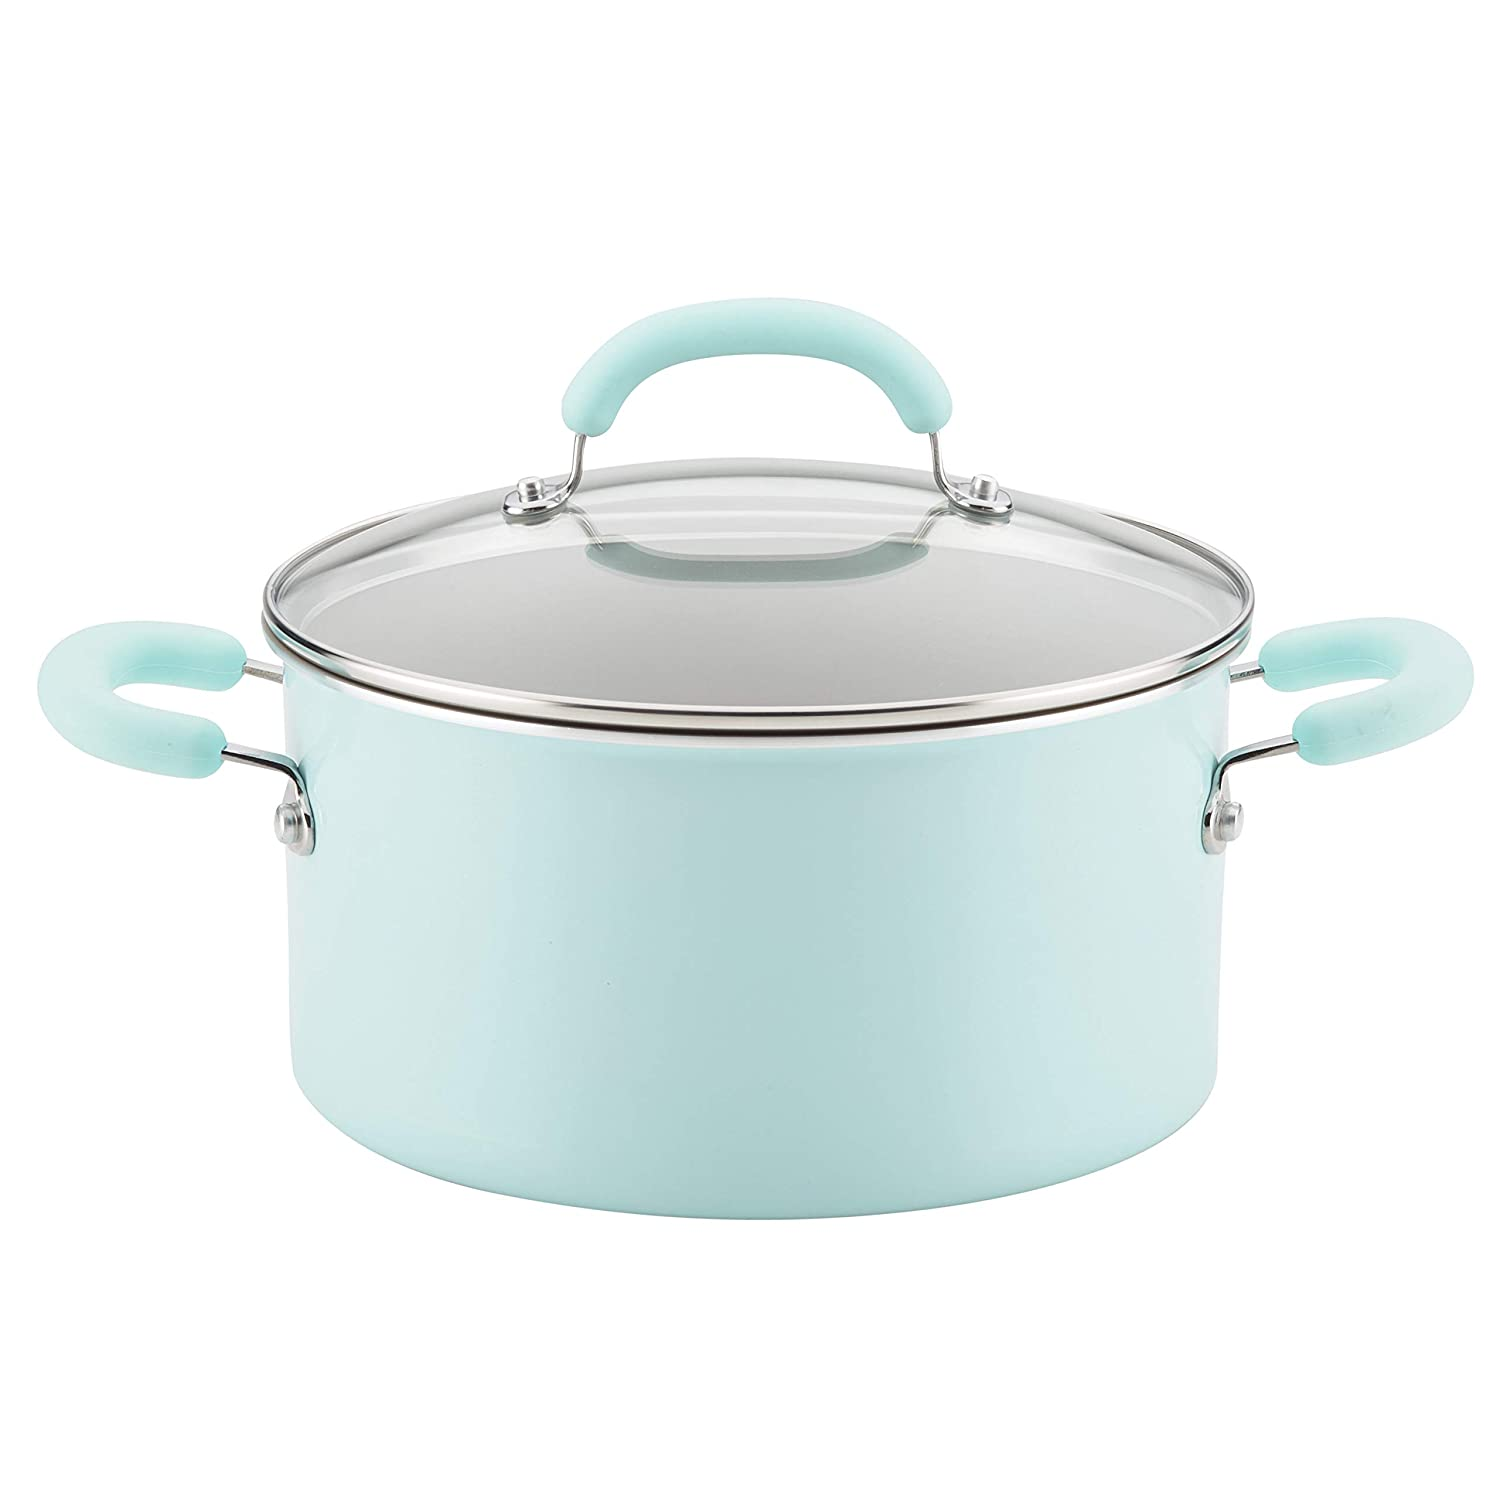 Rachael Ray 12165 6-Qt Aluminum Stockpot, 6 Quart, Light Blue Shimmer